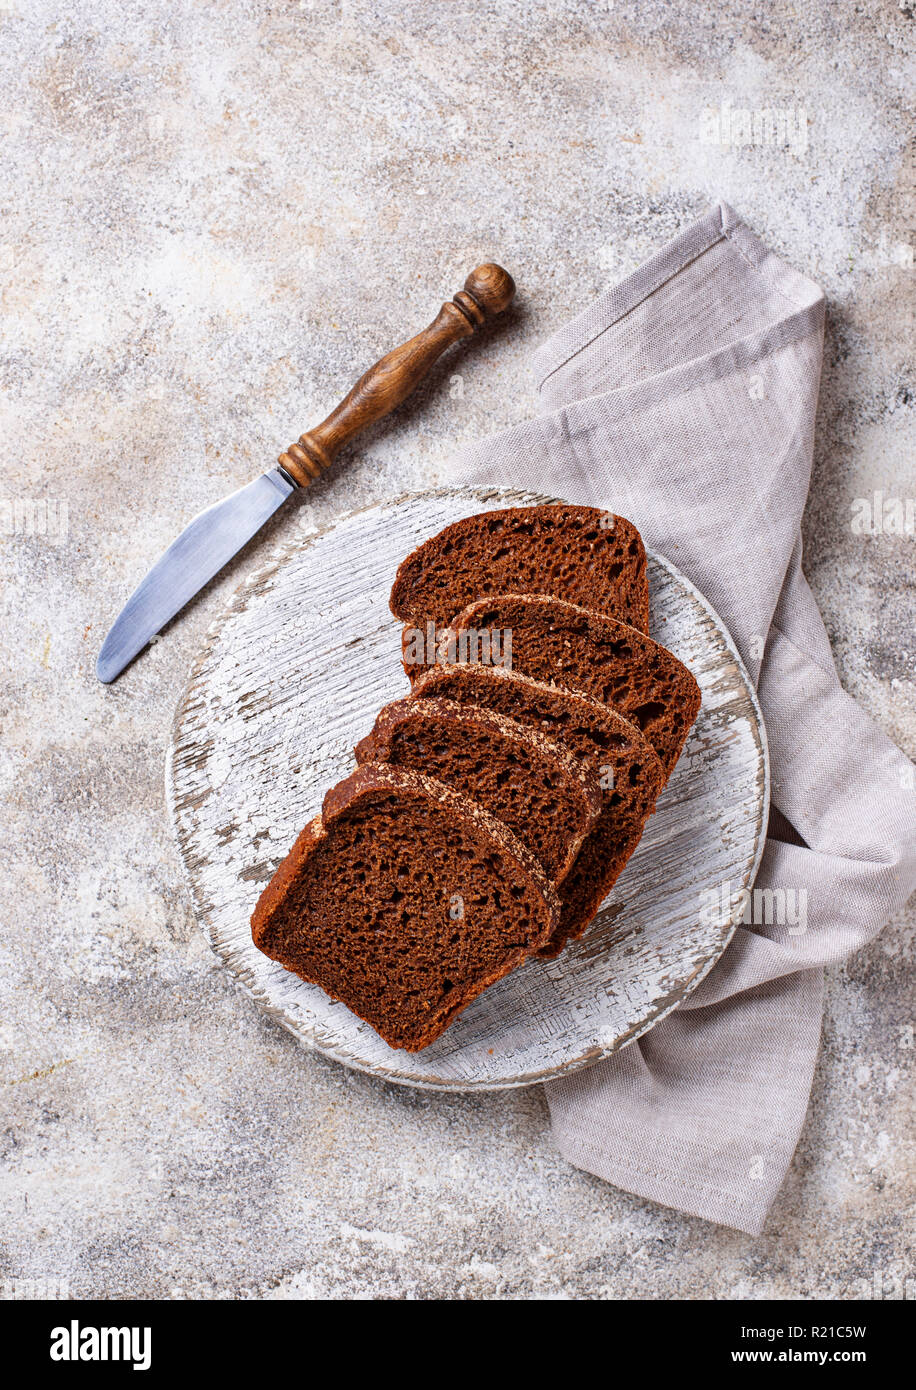 Fresh sliced rye bread on light background - Stock Image